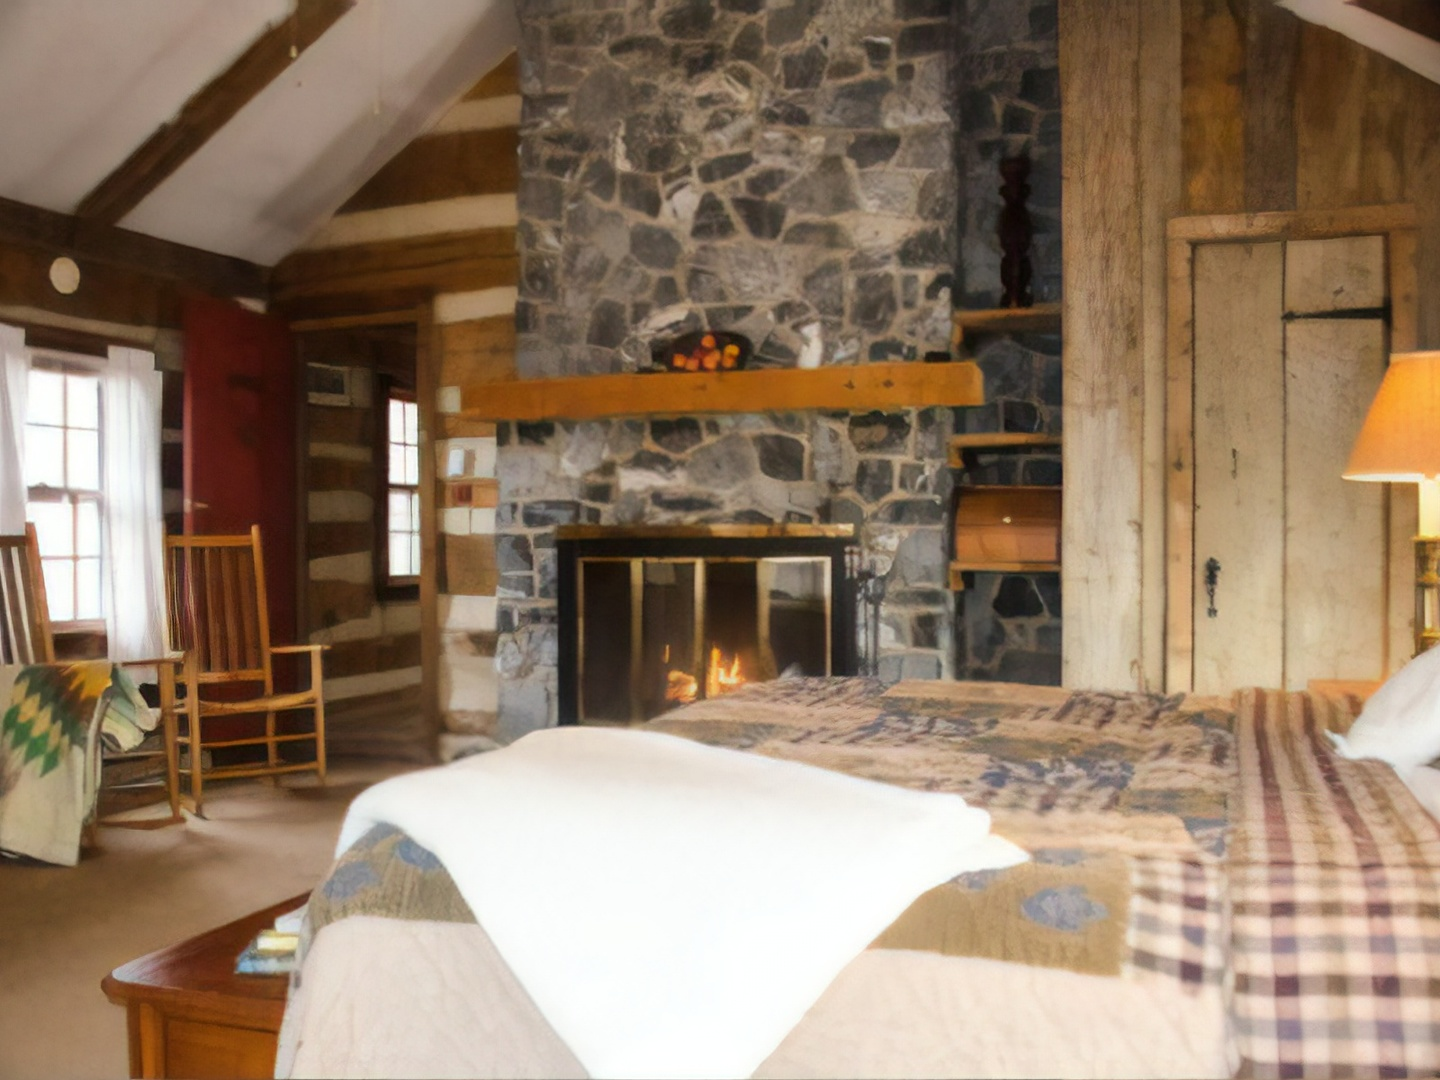 A room filled with furniture and a fire place at Sugar Tree Inn.